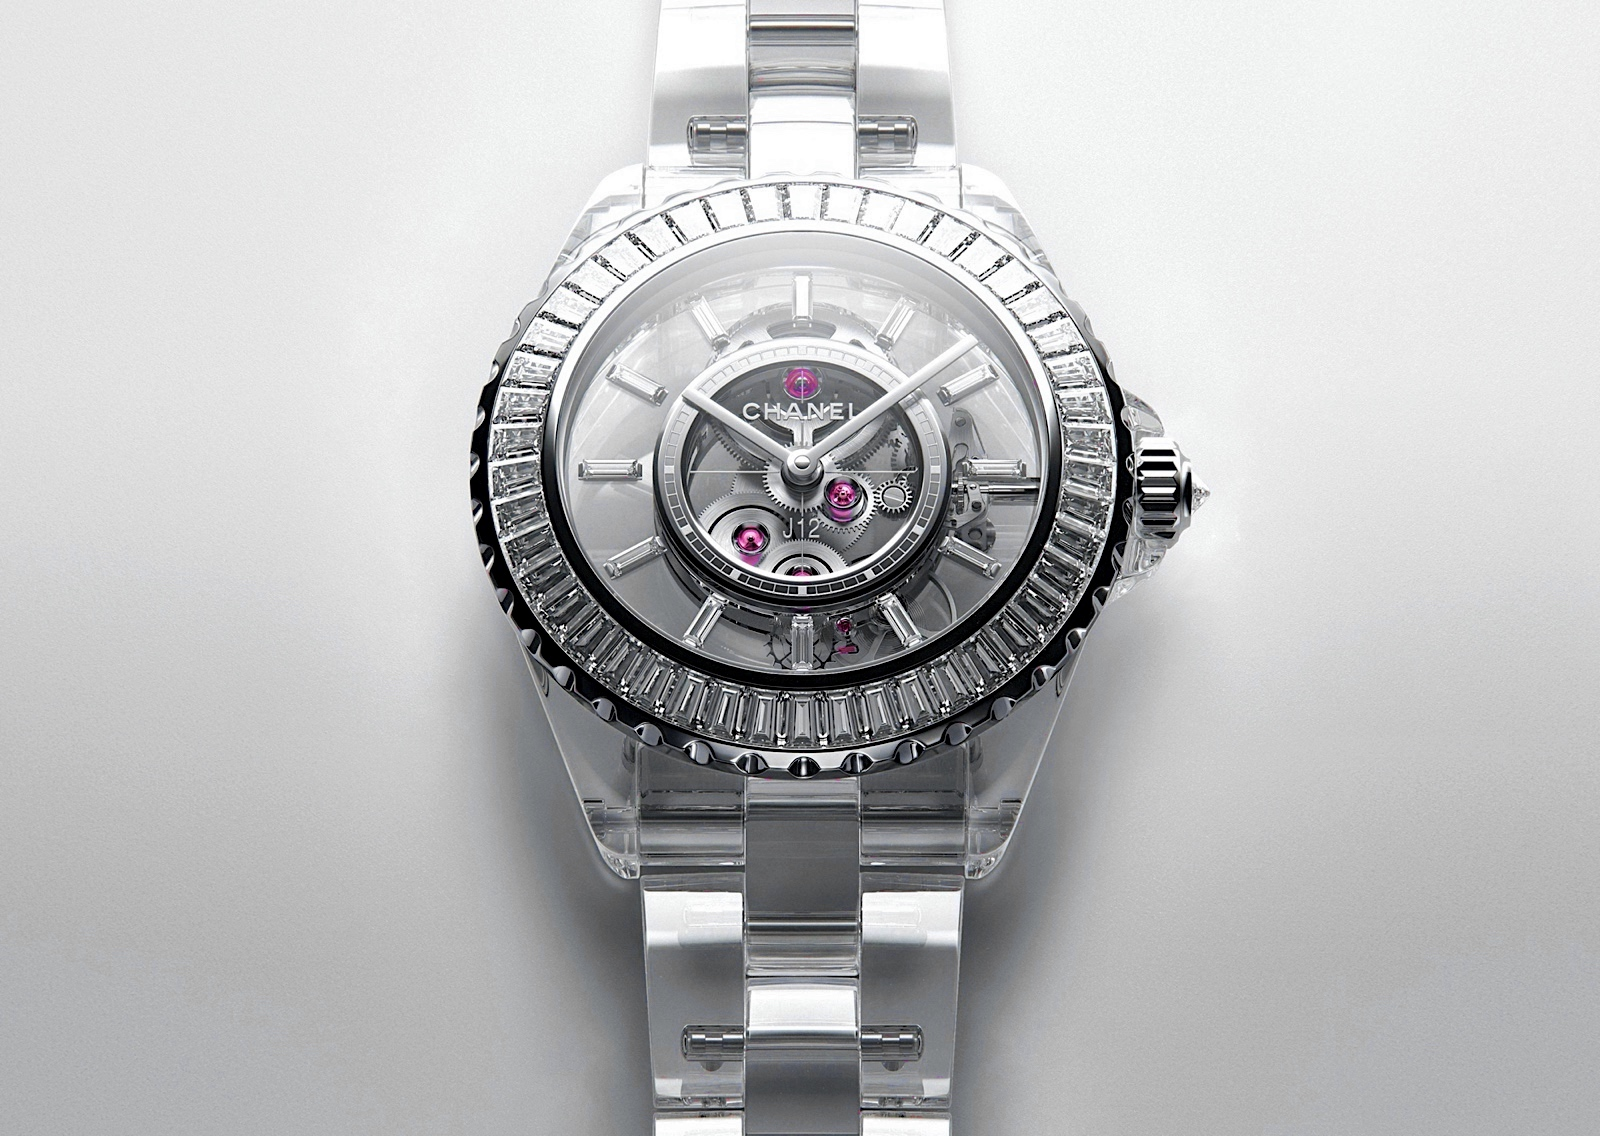 Chanel J12 X-RAY